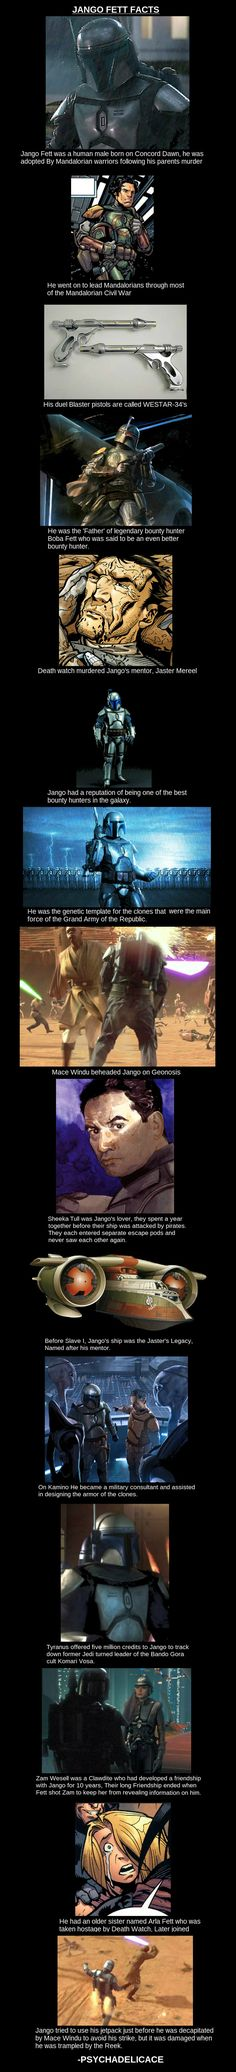 Jango in a whole new light.